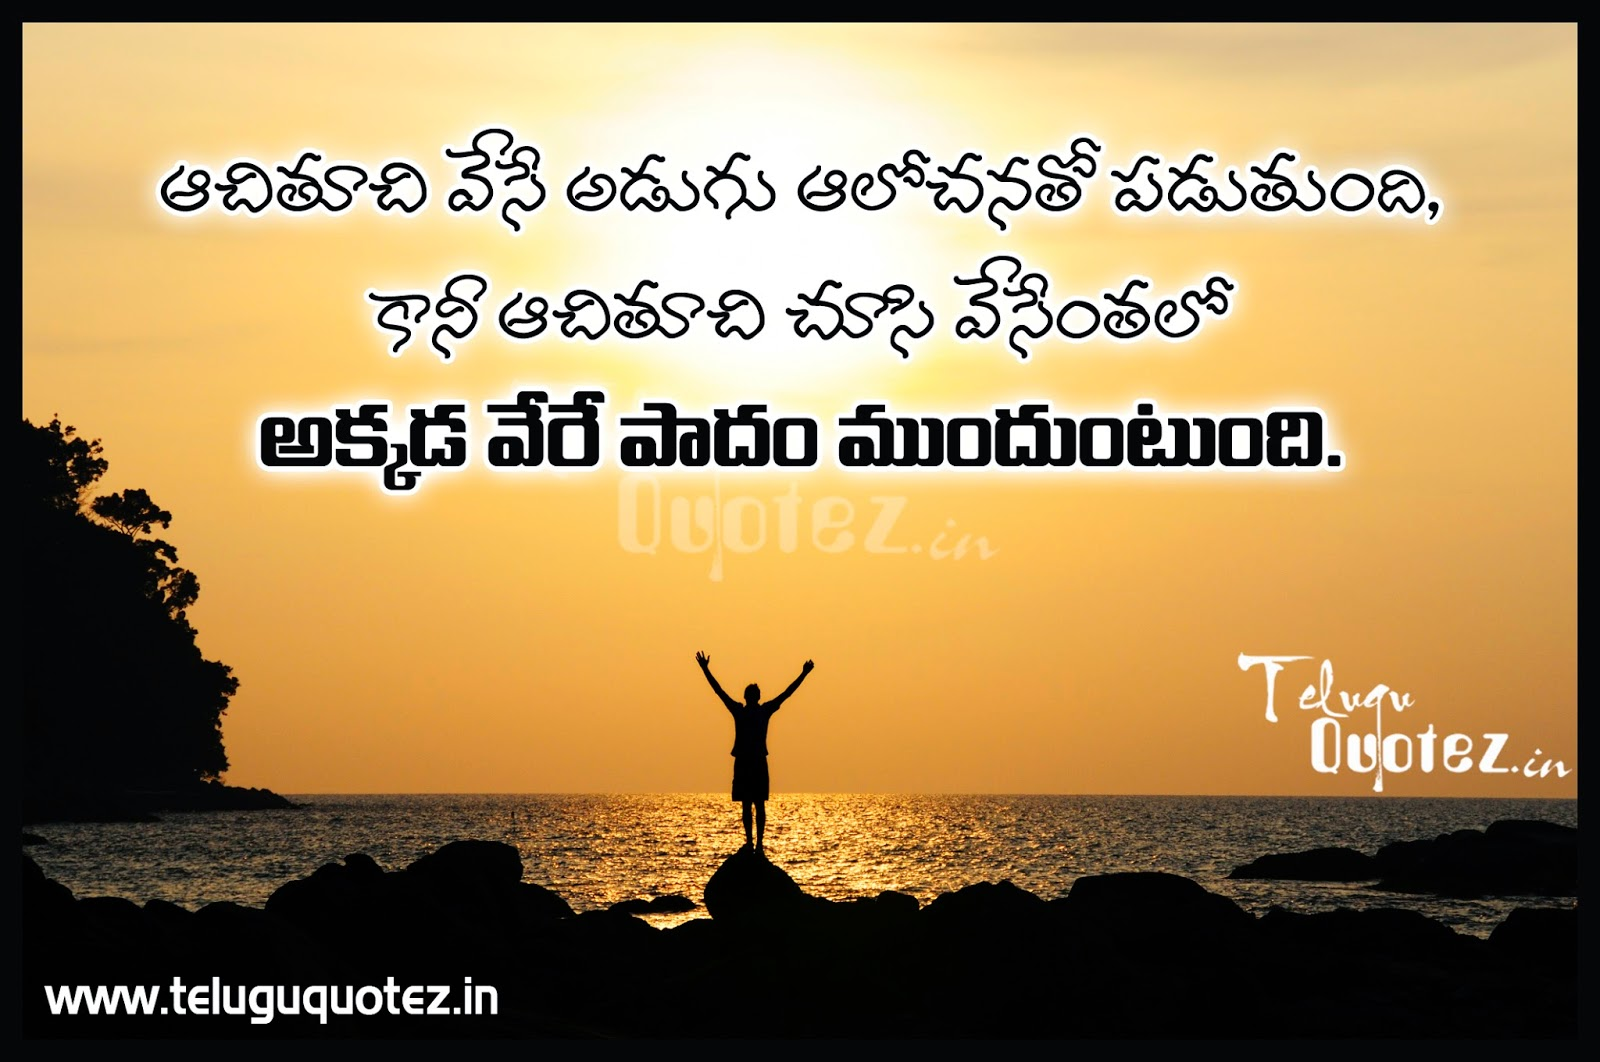 Life Journey Quotes In Hindi: Telugu Quotes On Life